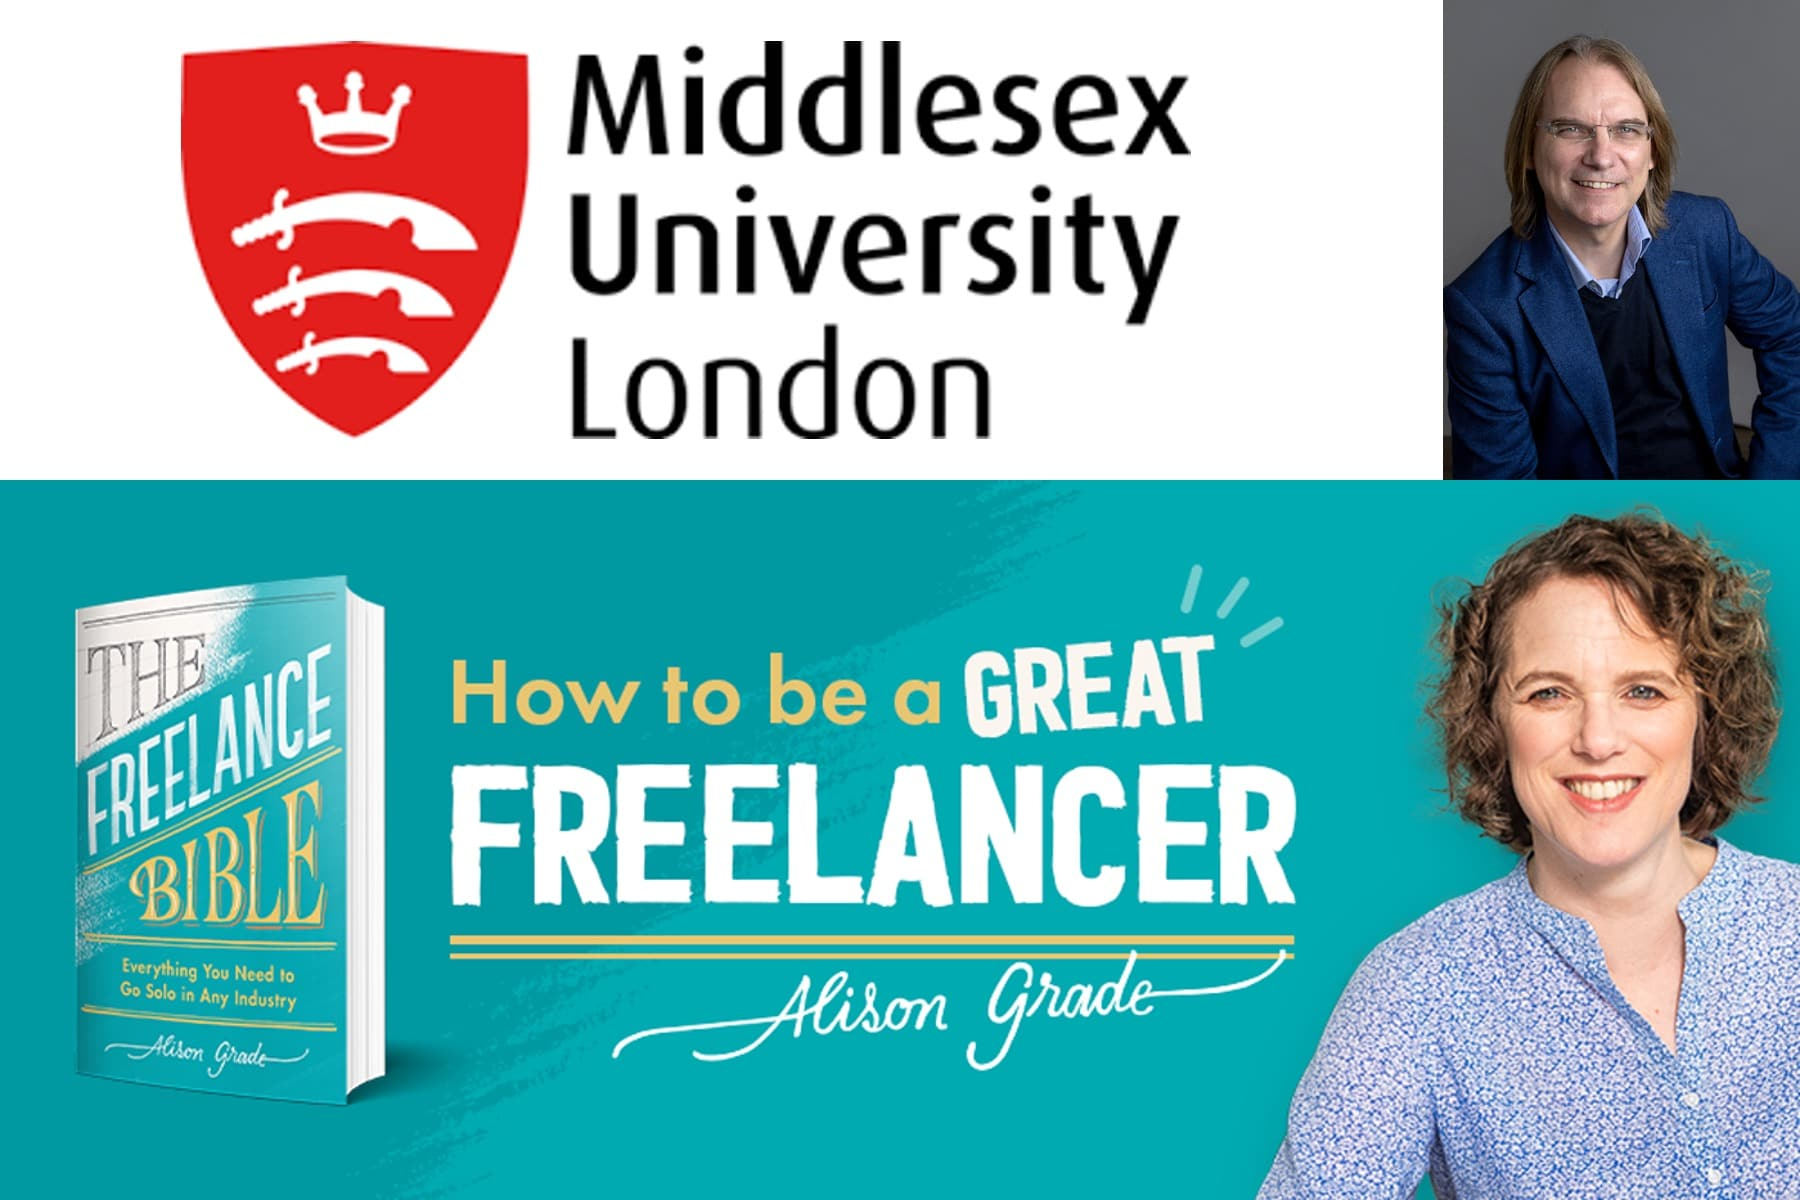 Middlesex University Freelancing Alison Grade